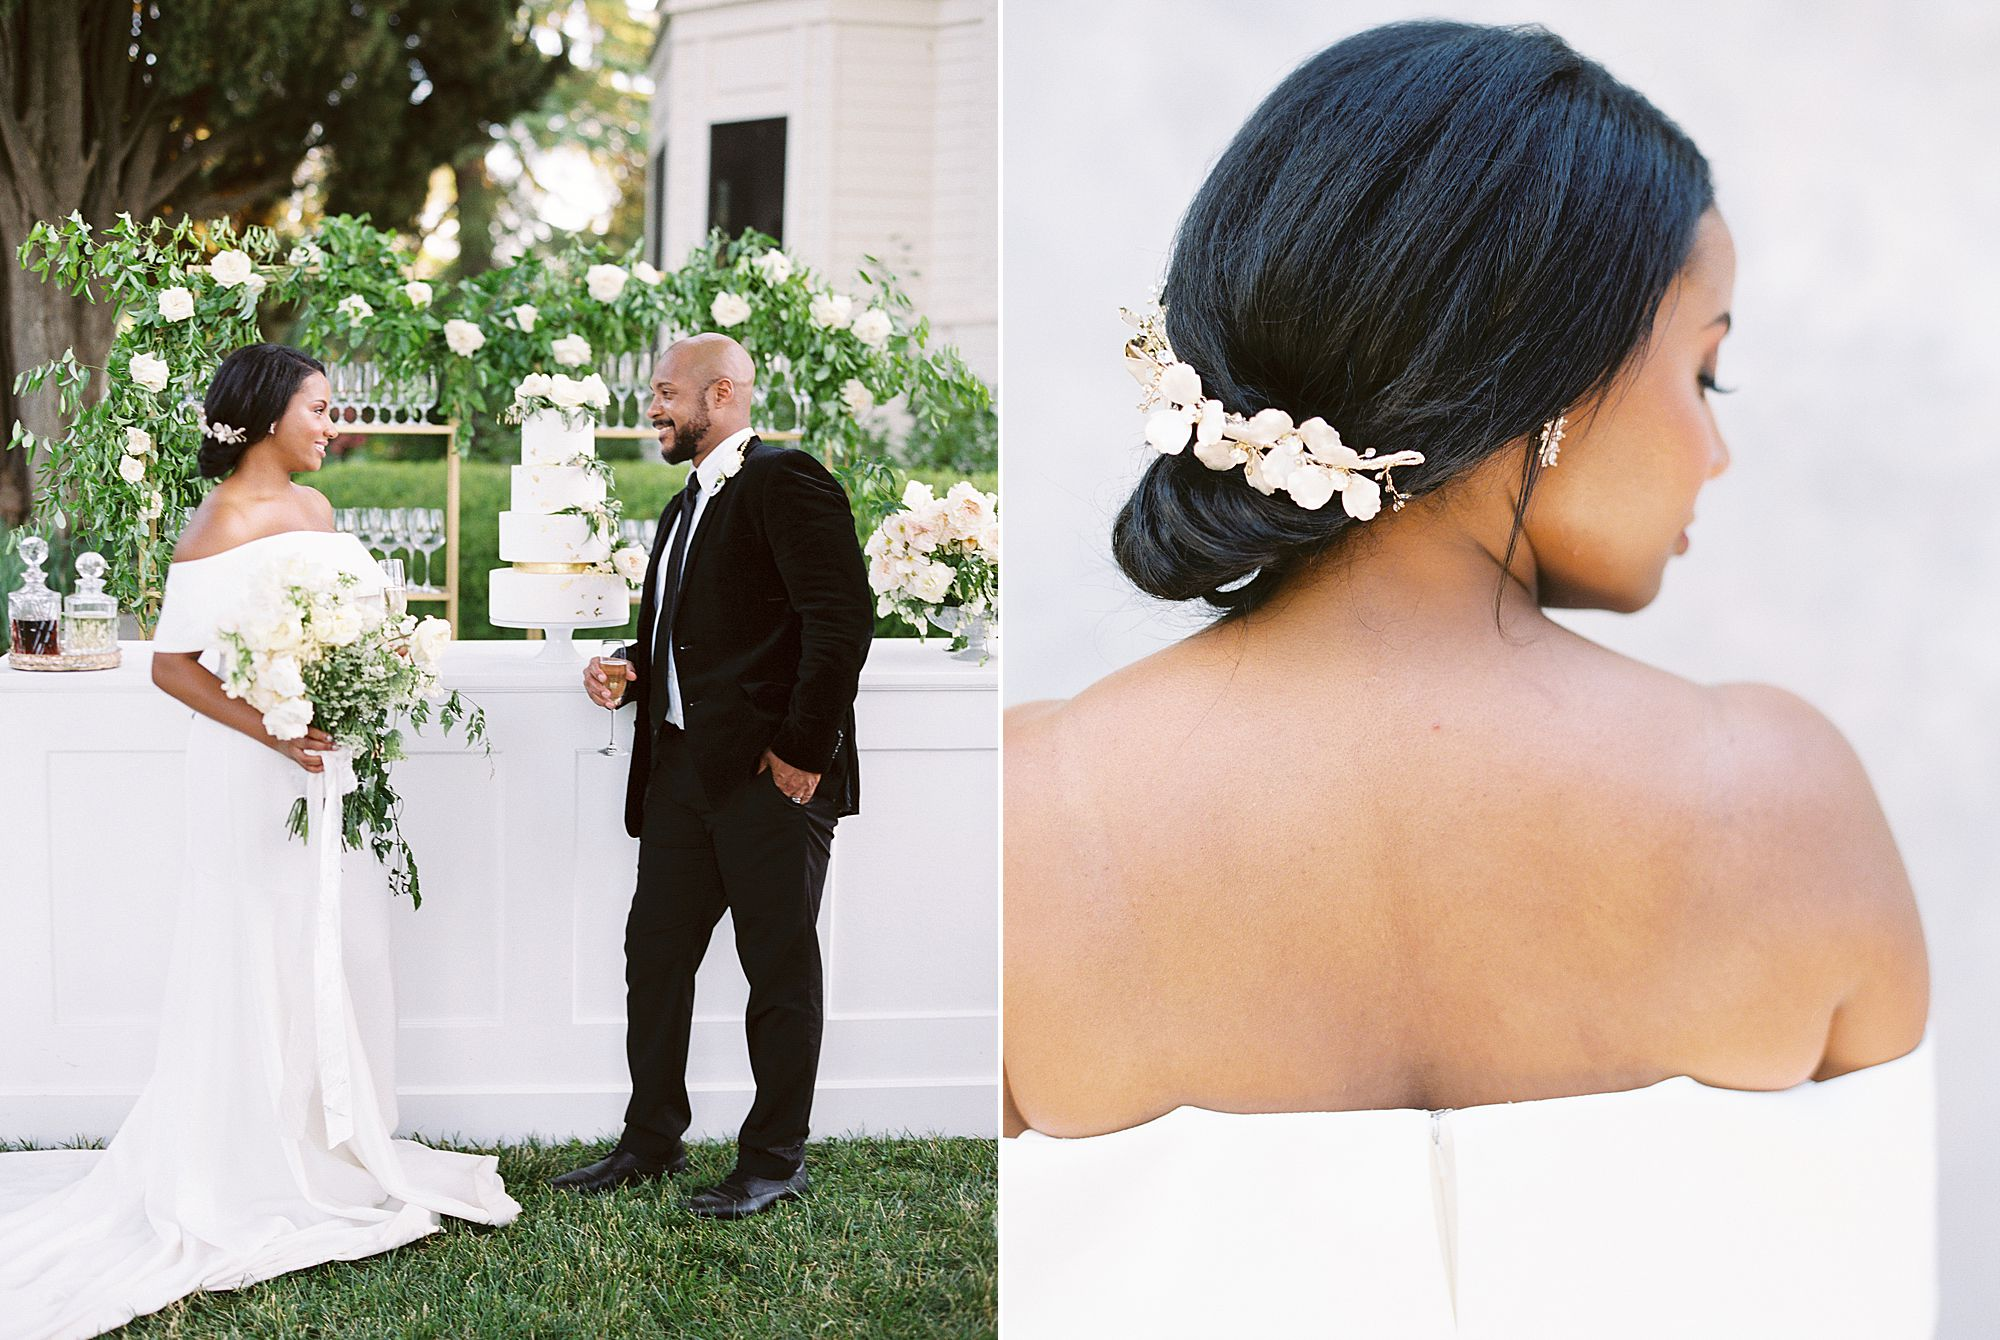 Park Winters Micro-Wedding Inspiration on Style Me Pretty - Stephanie Teague Events - Ashley Baumgartner - Park Winters Wedding - Black Tie Wedding - Micro-Wedding Sacramento Photographer_0033.jpg